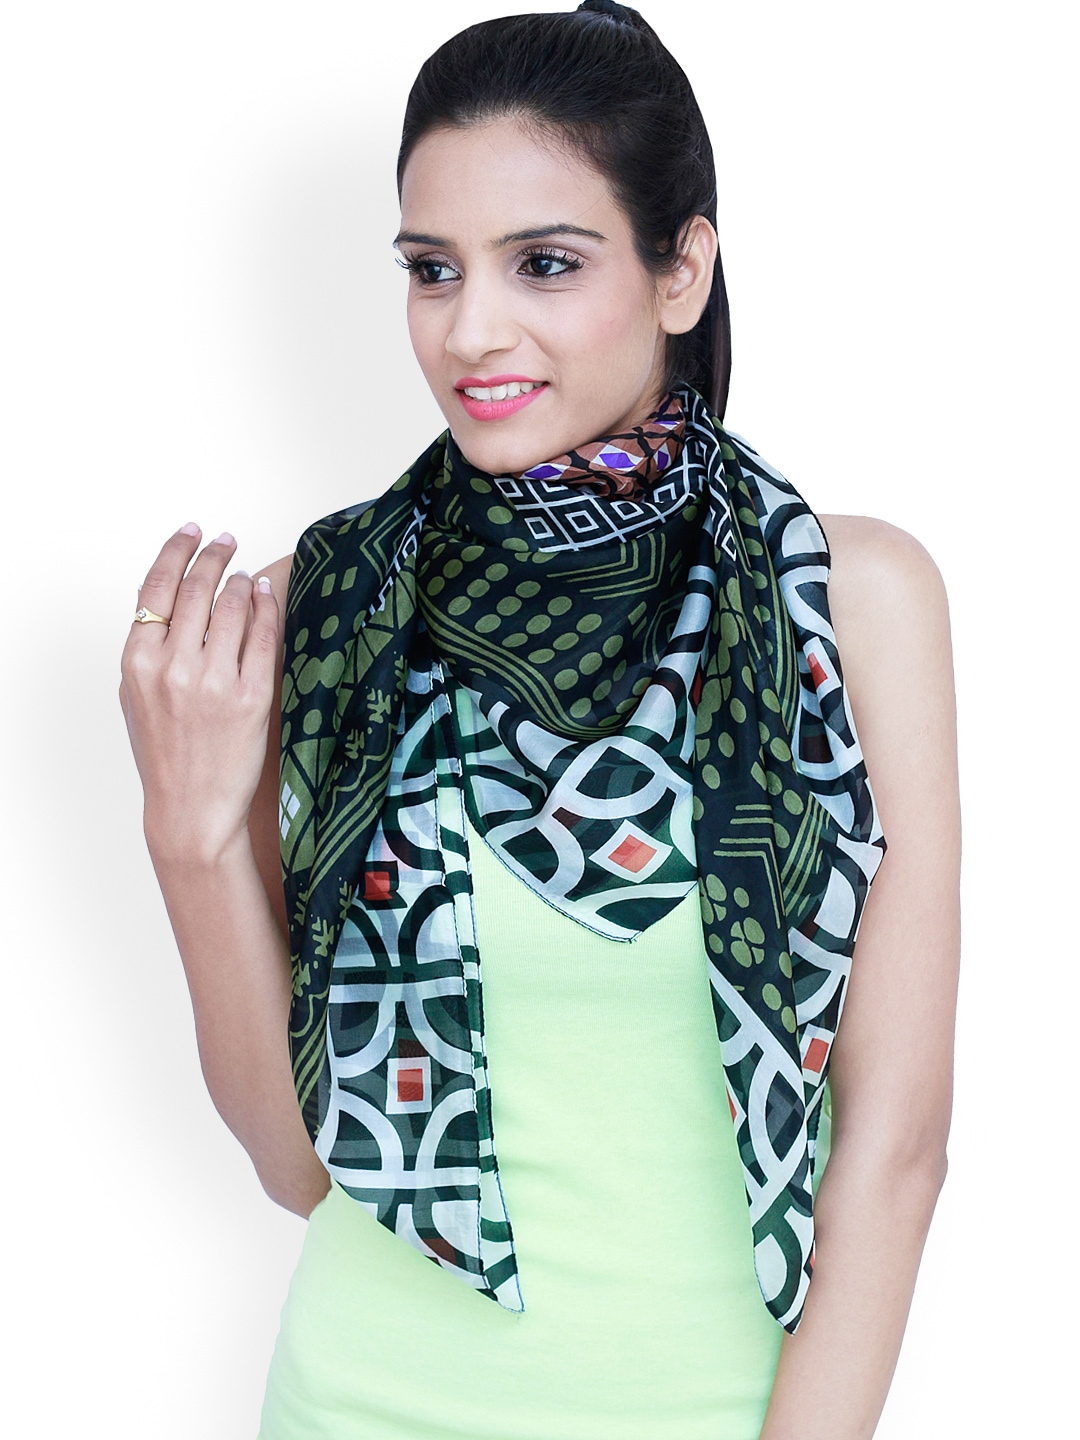 Find great deals on eBay for silk print scarf. Shop with confidence. Skip to main content. eBay: Women Print Hijab Scarf Silk-Satin Square Head Shawl Scarfs Long Scarves 90*90cm. Brand New · Unbranded. $ Buy It Now. Free Shipping. 80+ Sold. Talbots % Silk Navy blue with flower print Scarf.